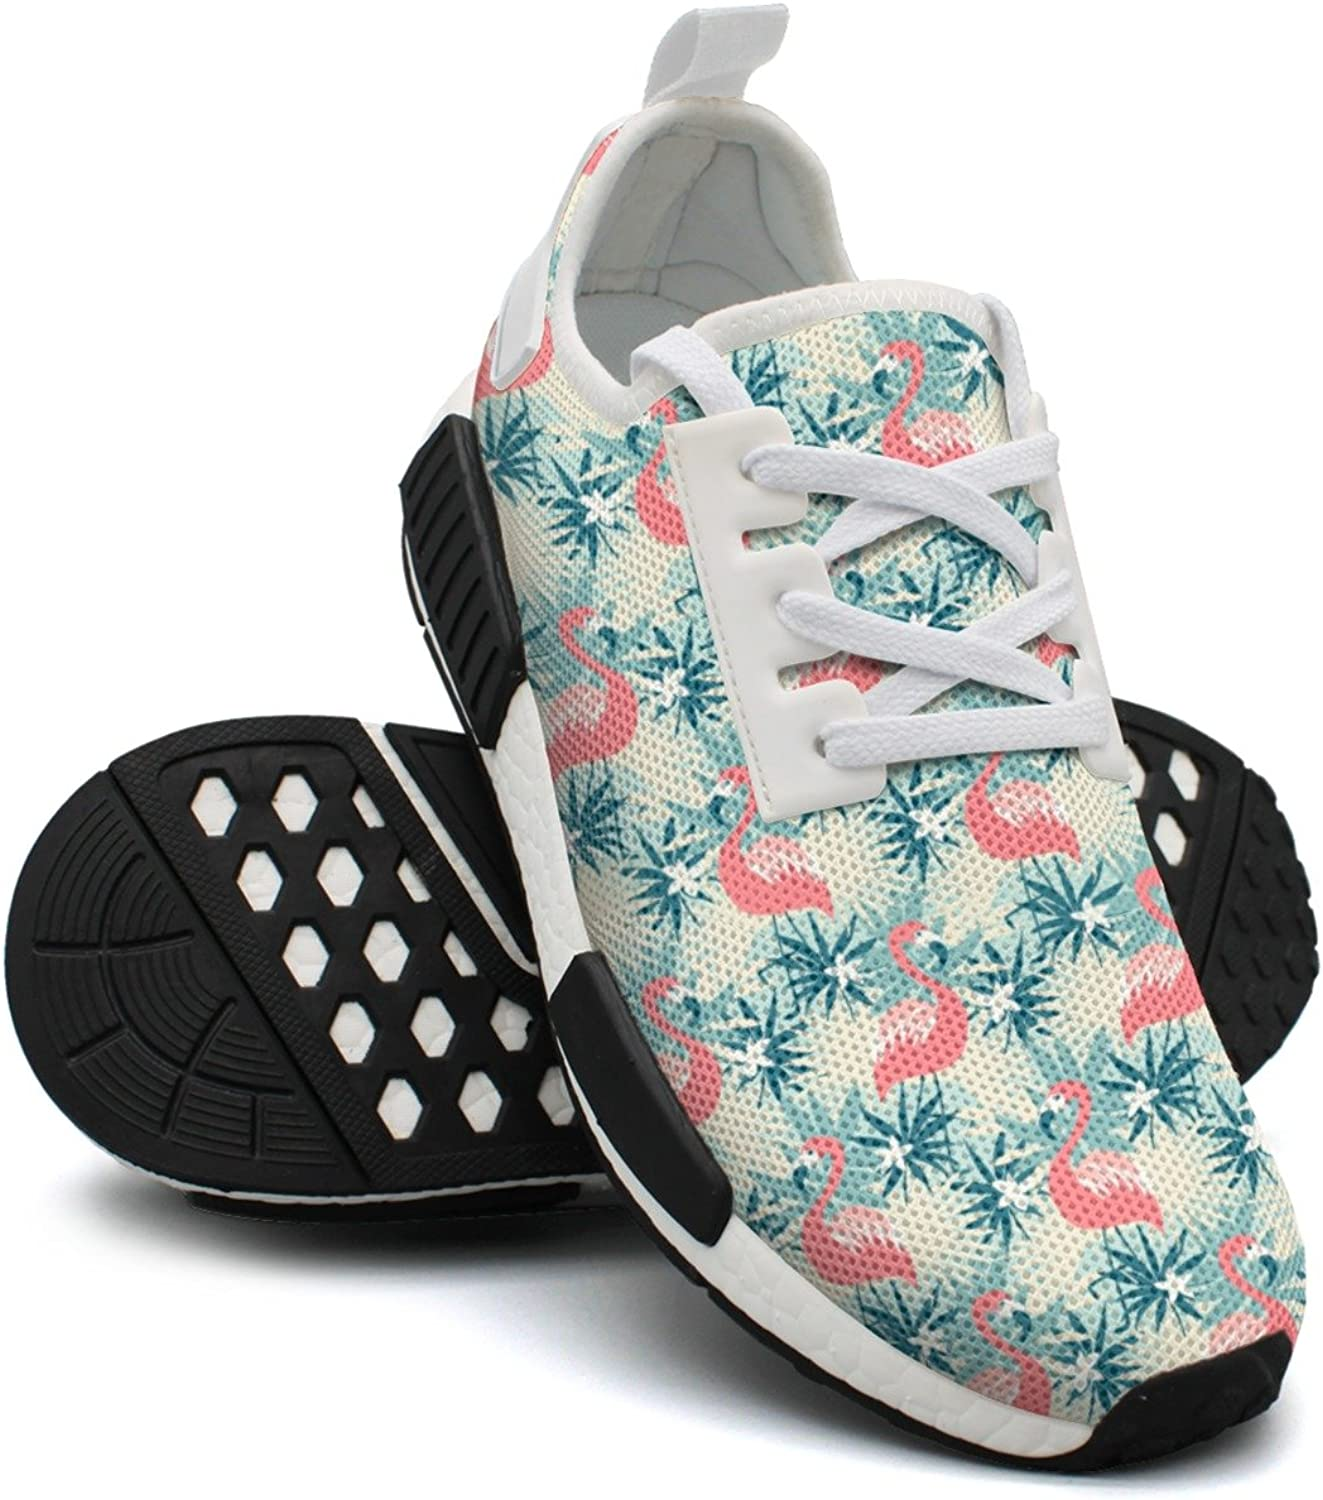 Ktyyuwwww Women's colorful New Flamingo and Tropical Plants Navy Sports Running shoes